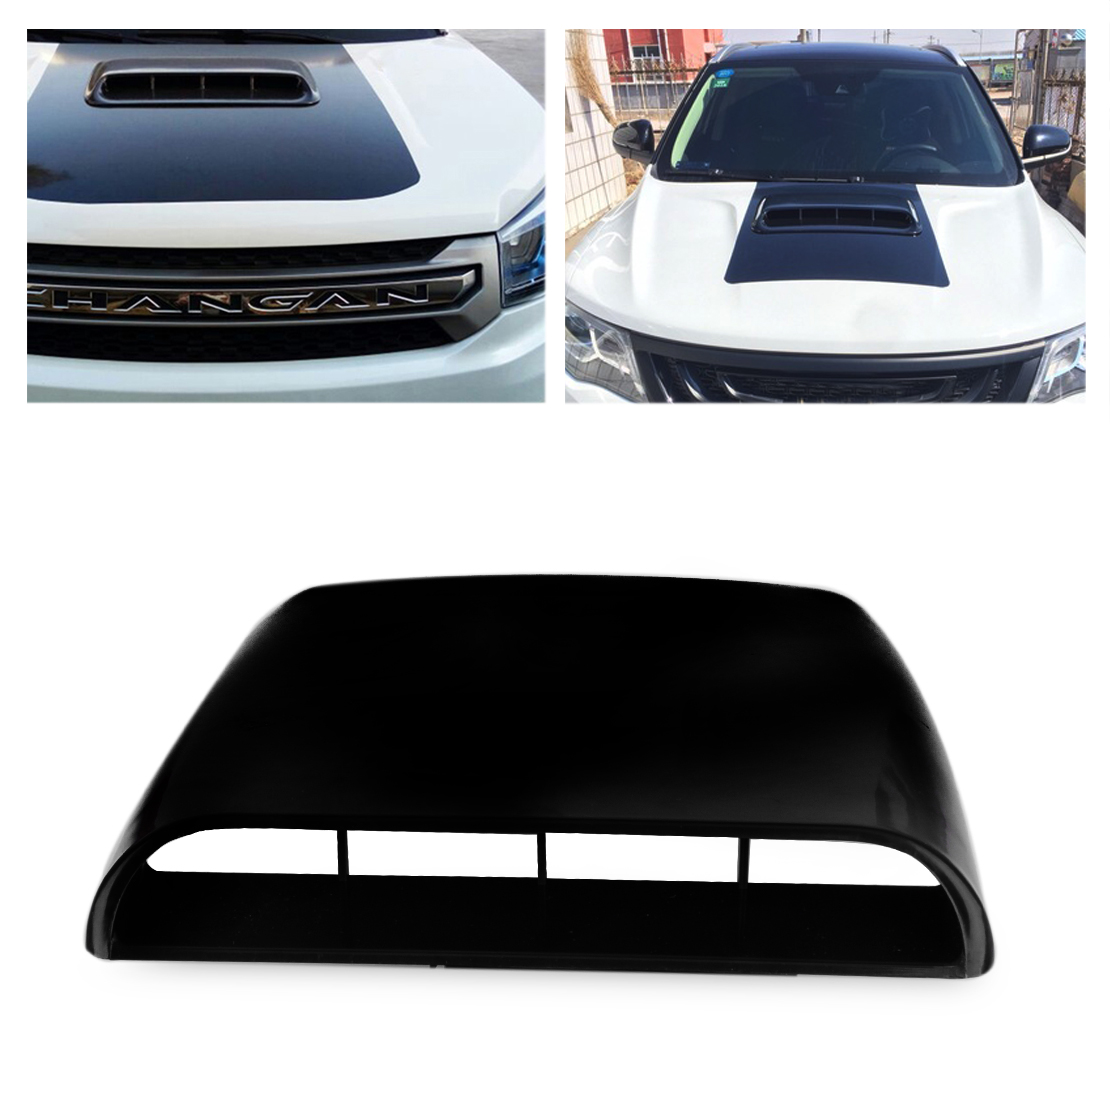 Universal Black Car Decorative Air Flow Intake Hood Scoop Vent Bonnet Cover 728360675118 | eBay